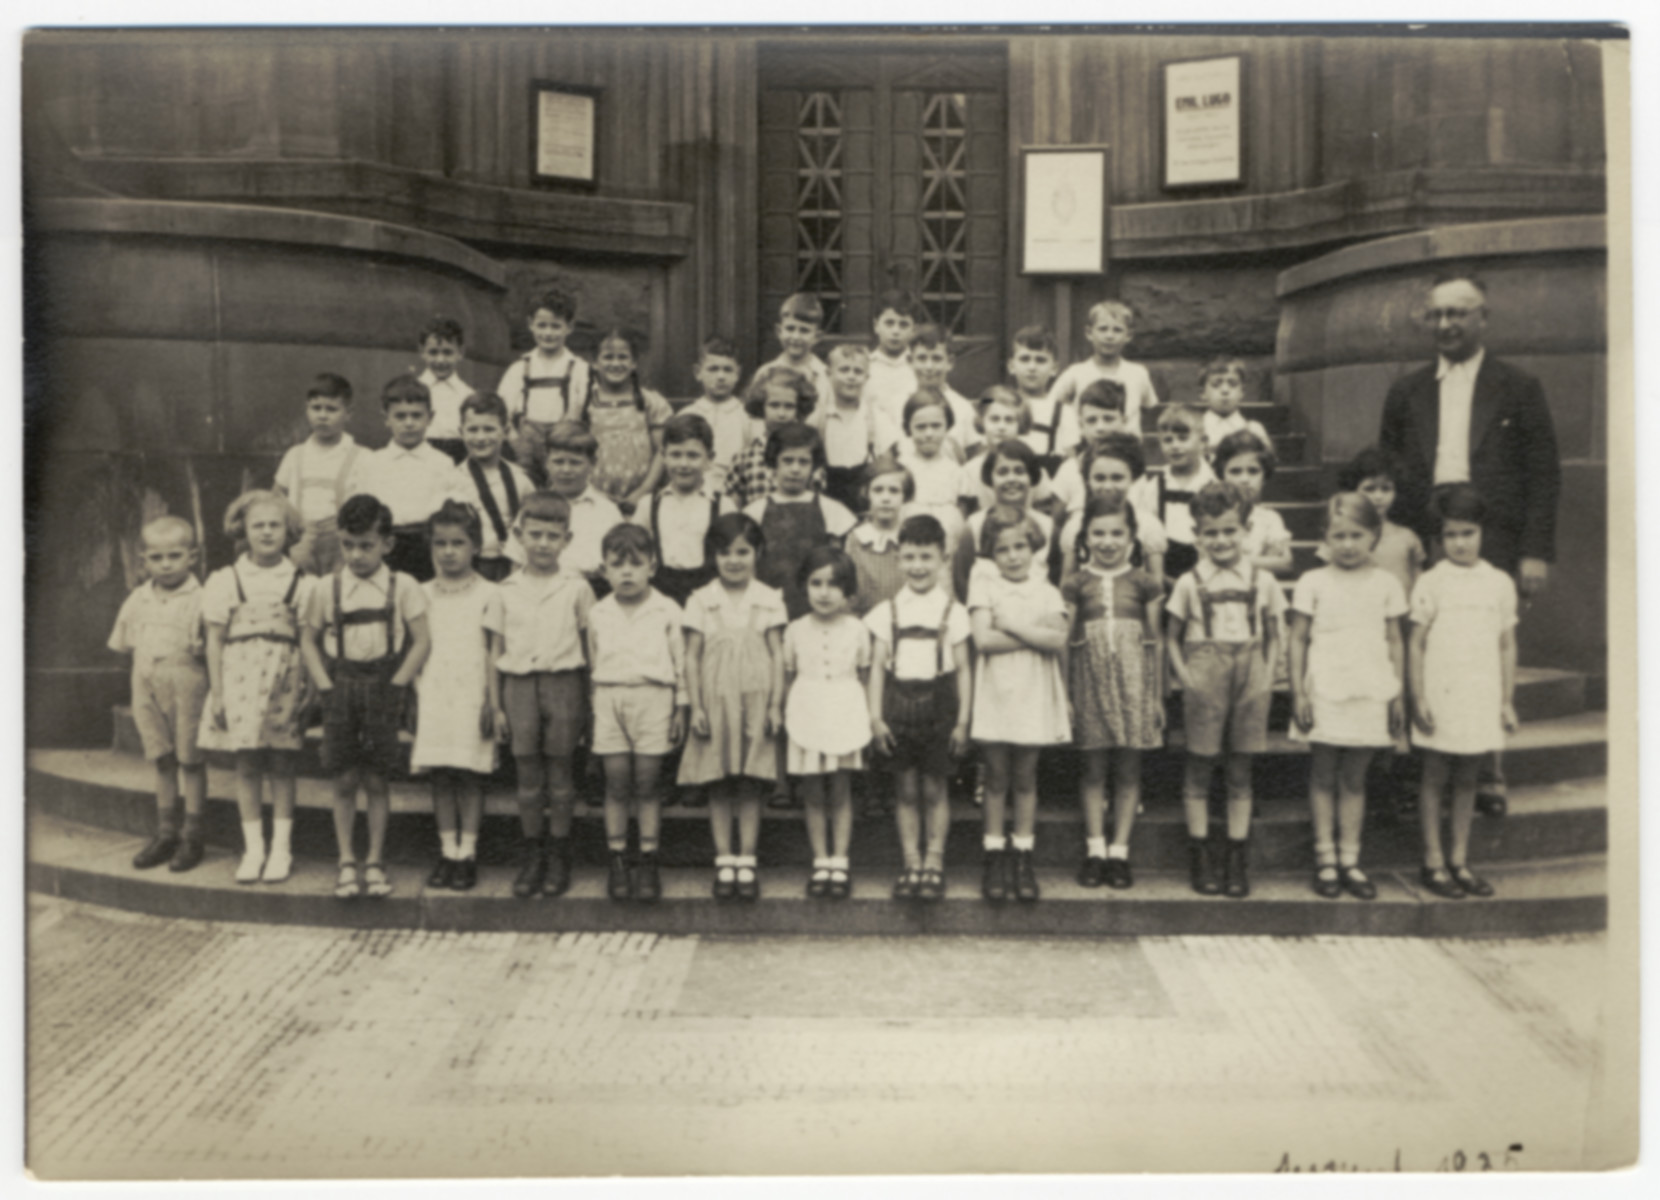 An elementary school class poses for a group picture on the steps on a building in Mannheim.  Werner Hirsch is probably pictured in the front row, third from the left.